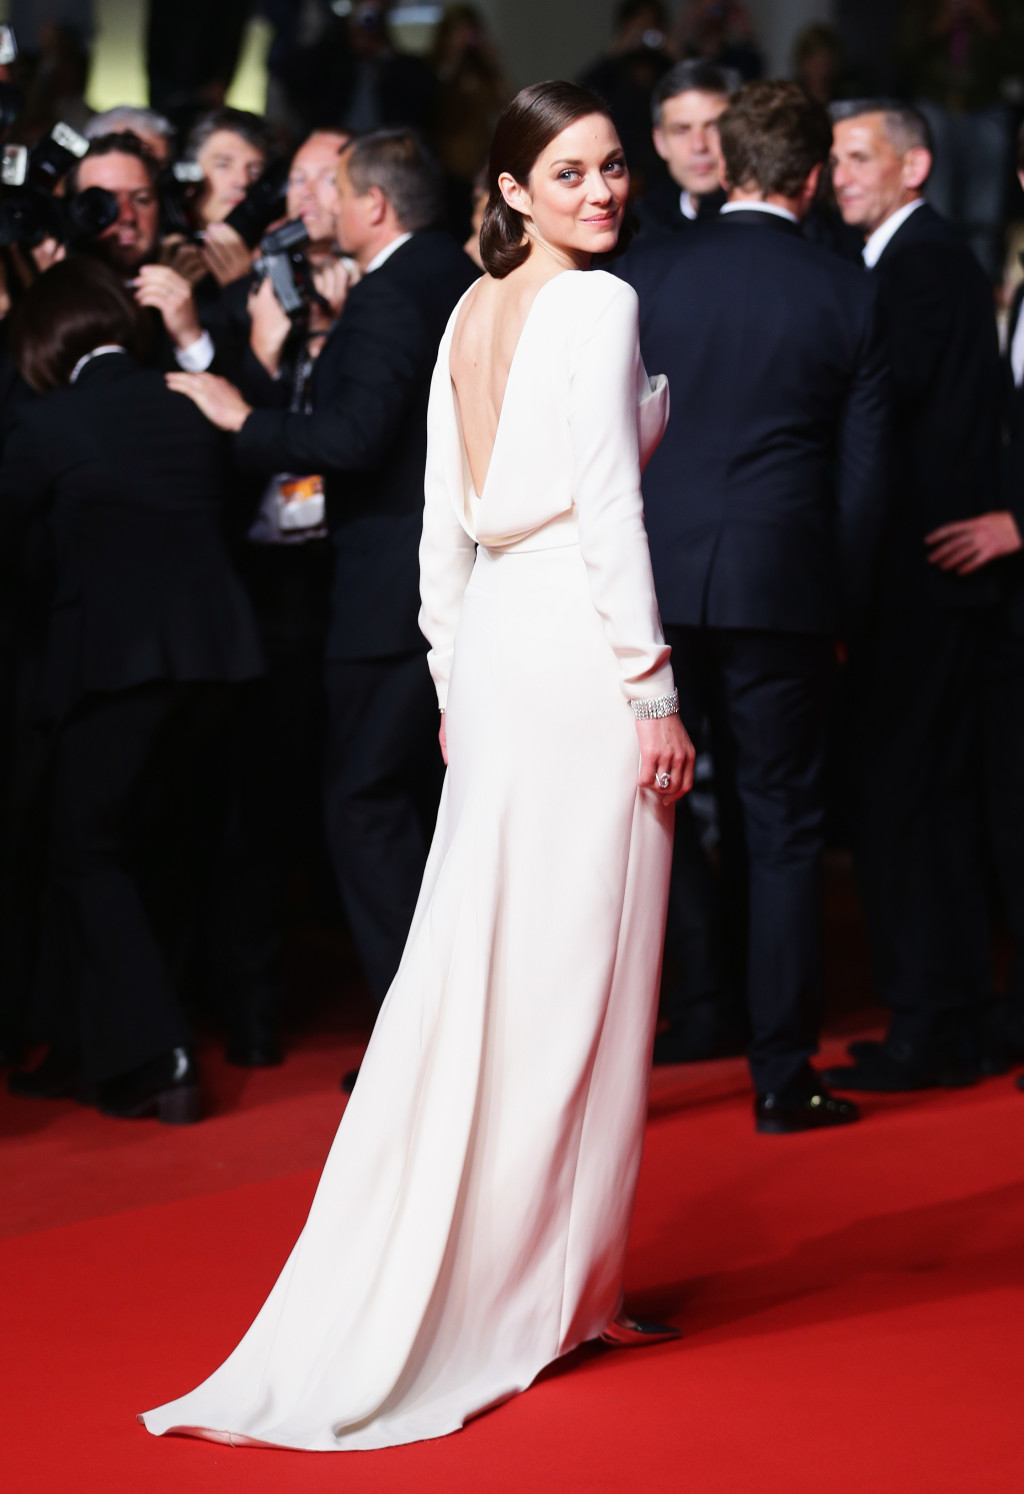 Style Watch: Bianca Balti, Marion Cotillard, and more